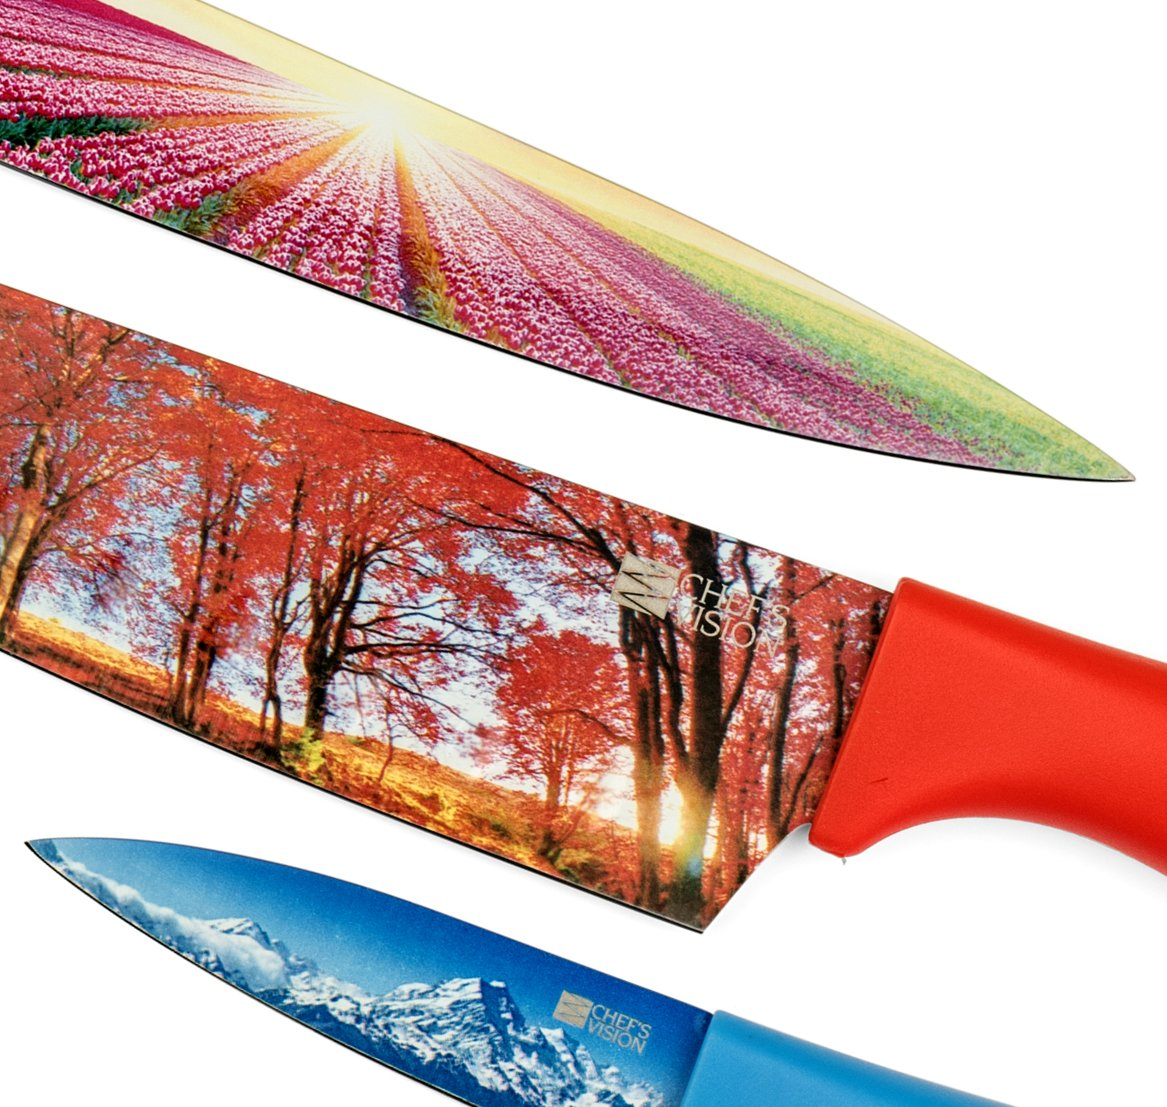 Kitchen Knife Set in Gift Box by Chef's Vision - Landscape Series - Beautiful, Unique Gifts For Her and For Him - 6 Piece Color Knife Set - Chef, Bread, Slicer, Santoku, Utility and Paring Knives by Chef's Vision (Image #3)